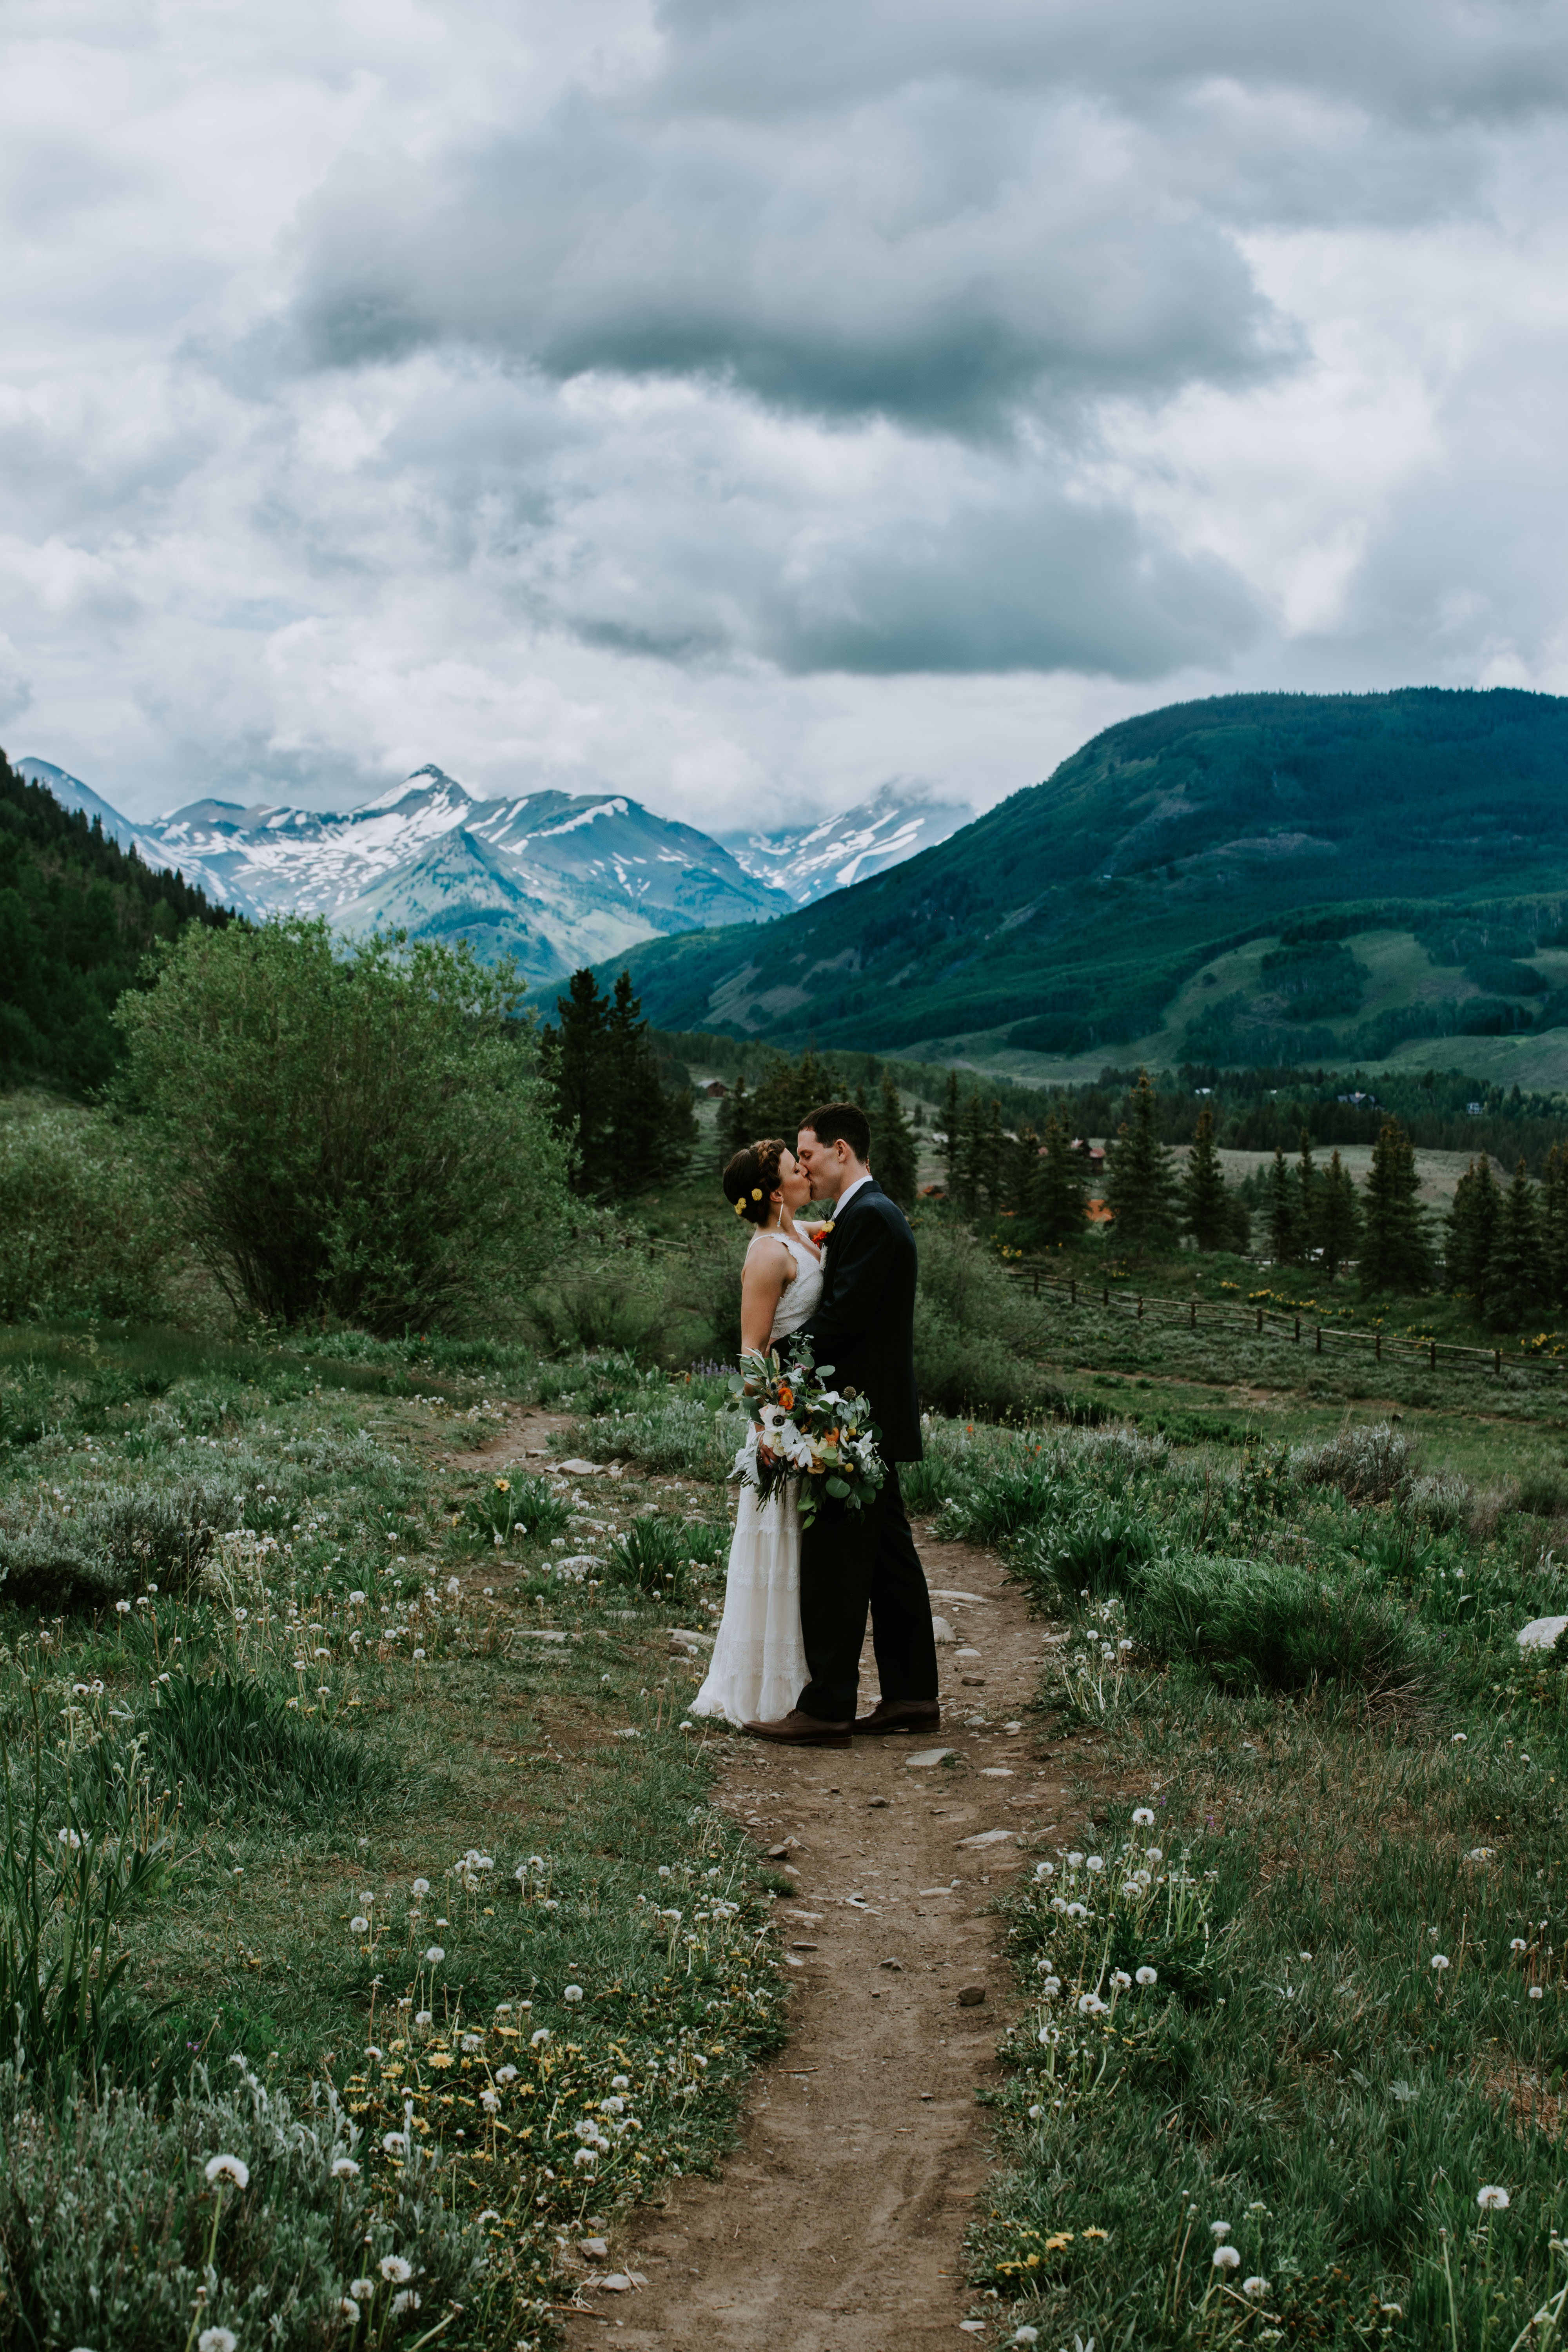 Laura_Alexe_Wedding_Crested_Butte_MegONeillPhotography__180616_88